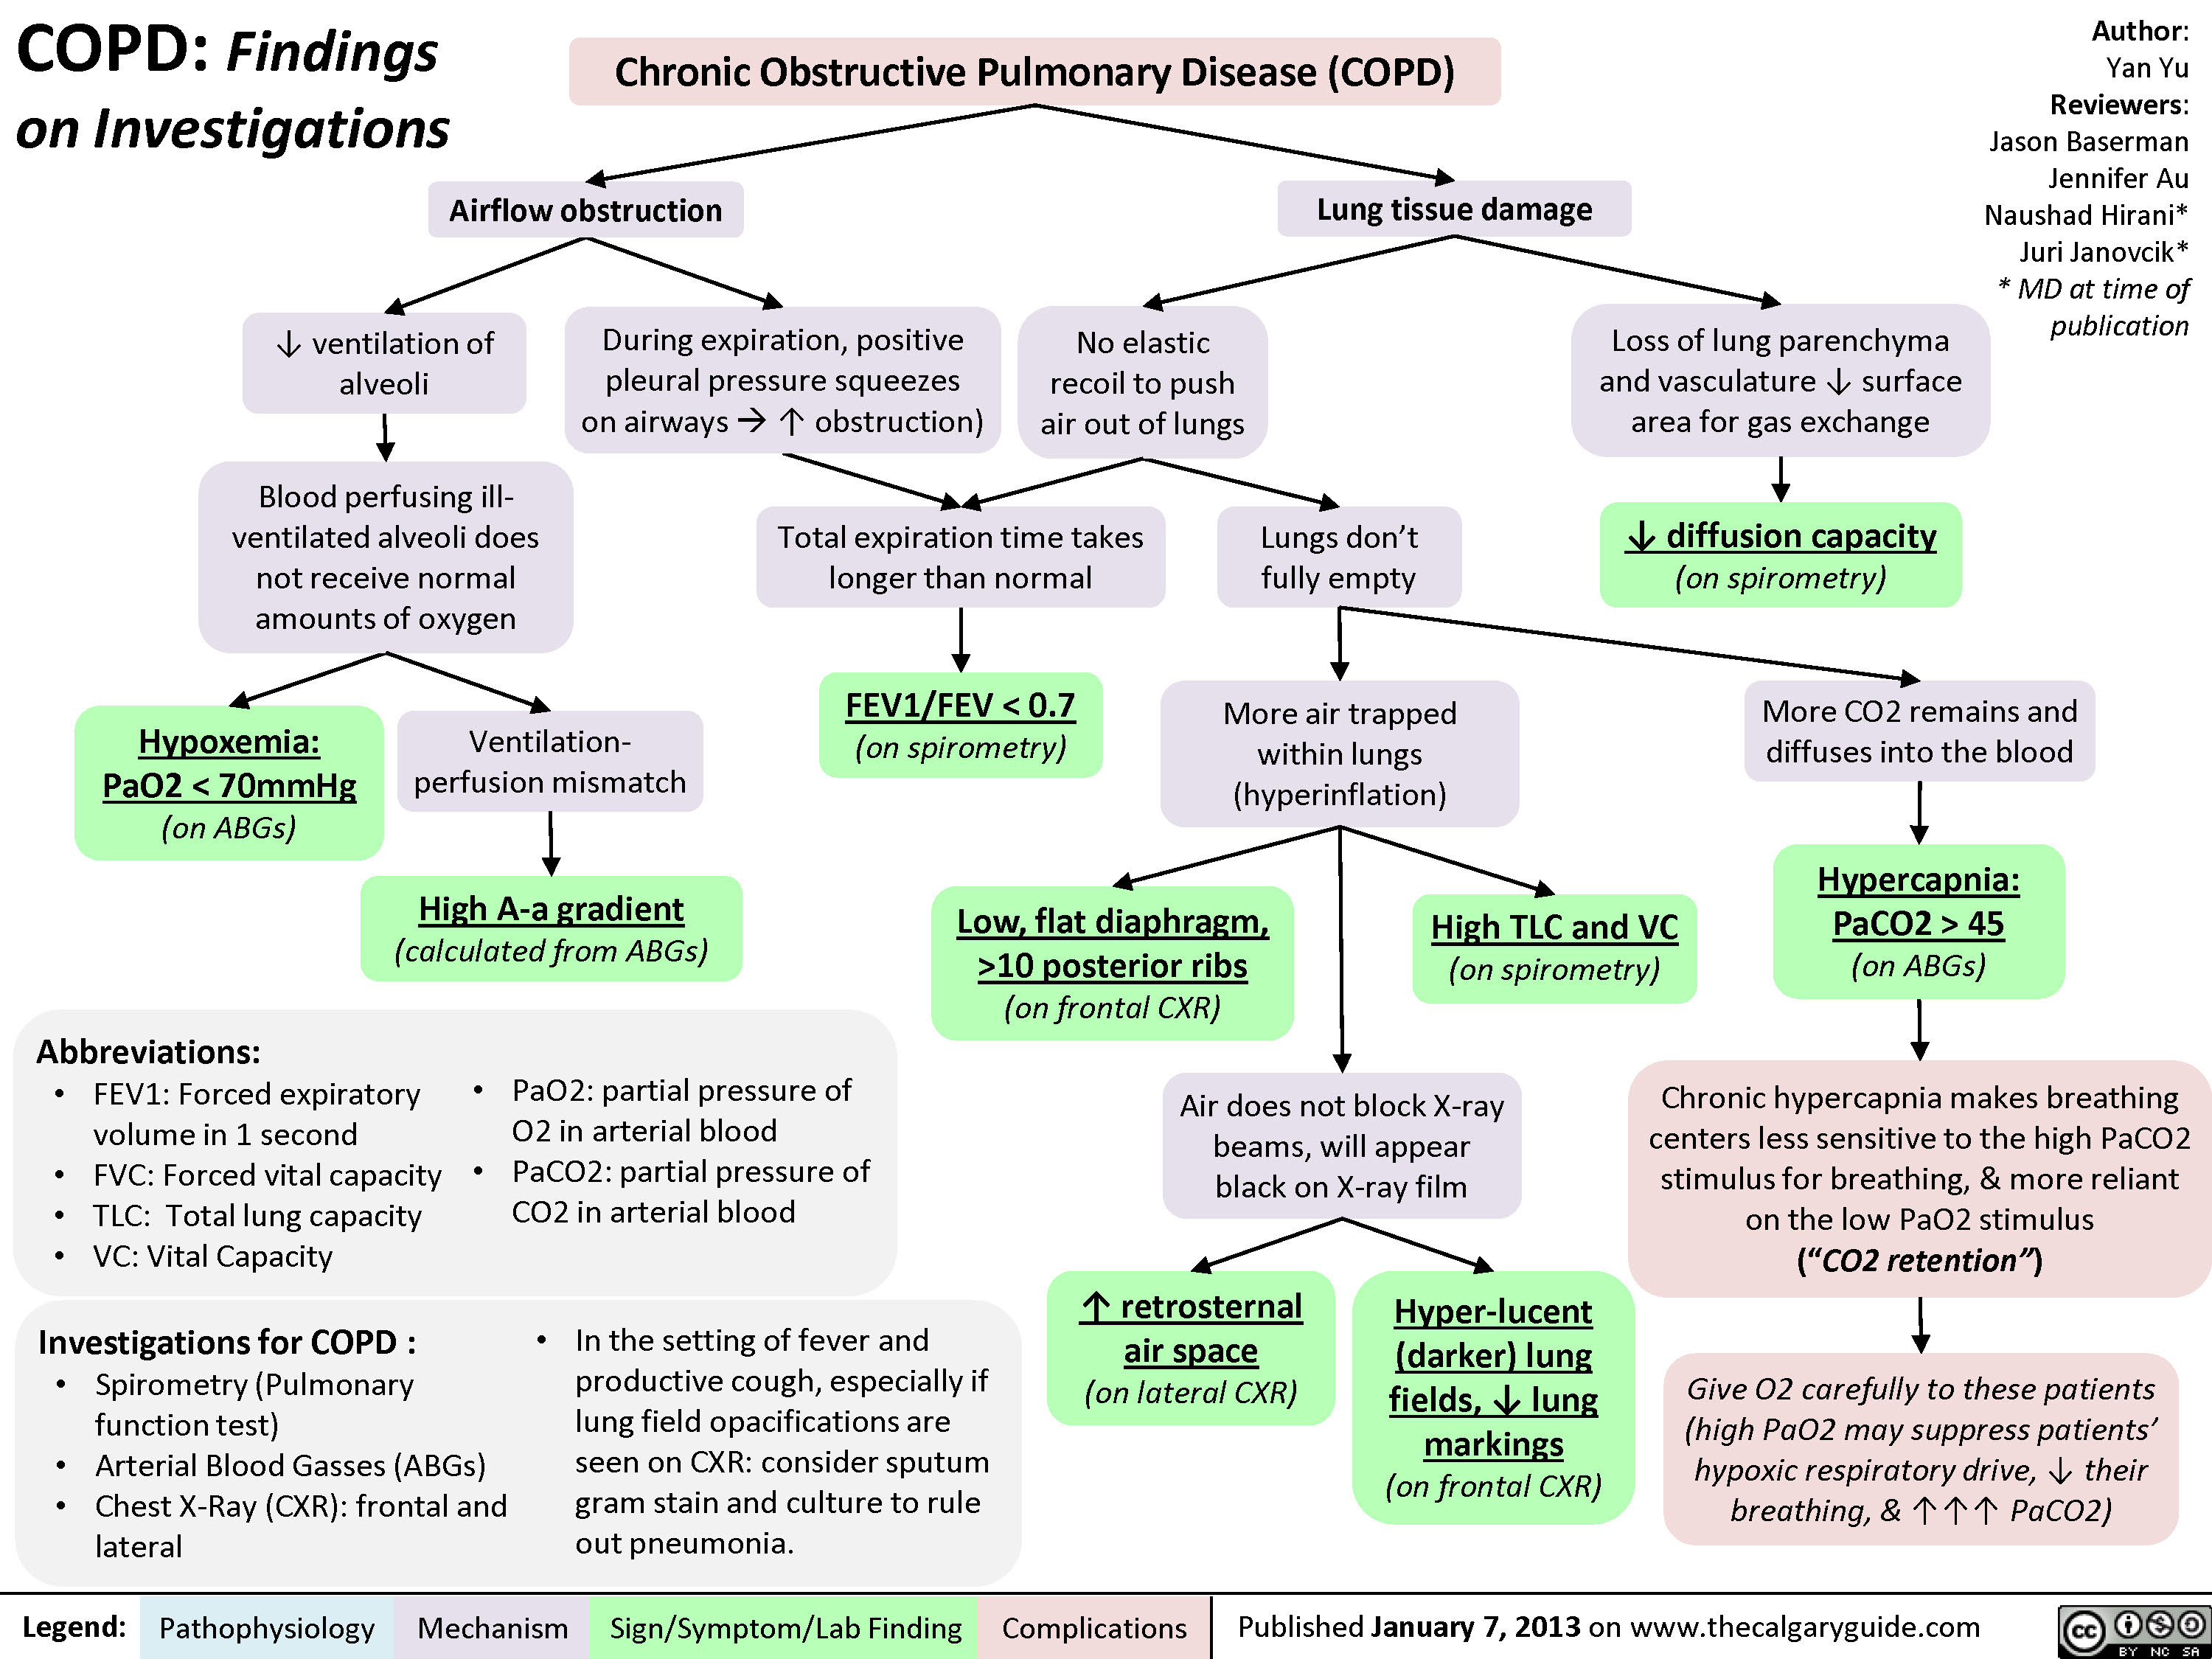 COPD: Findings on Investigations